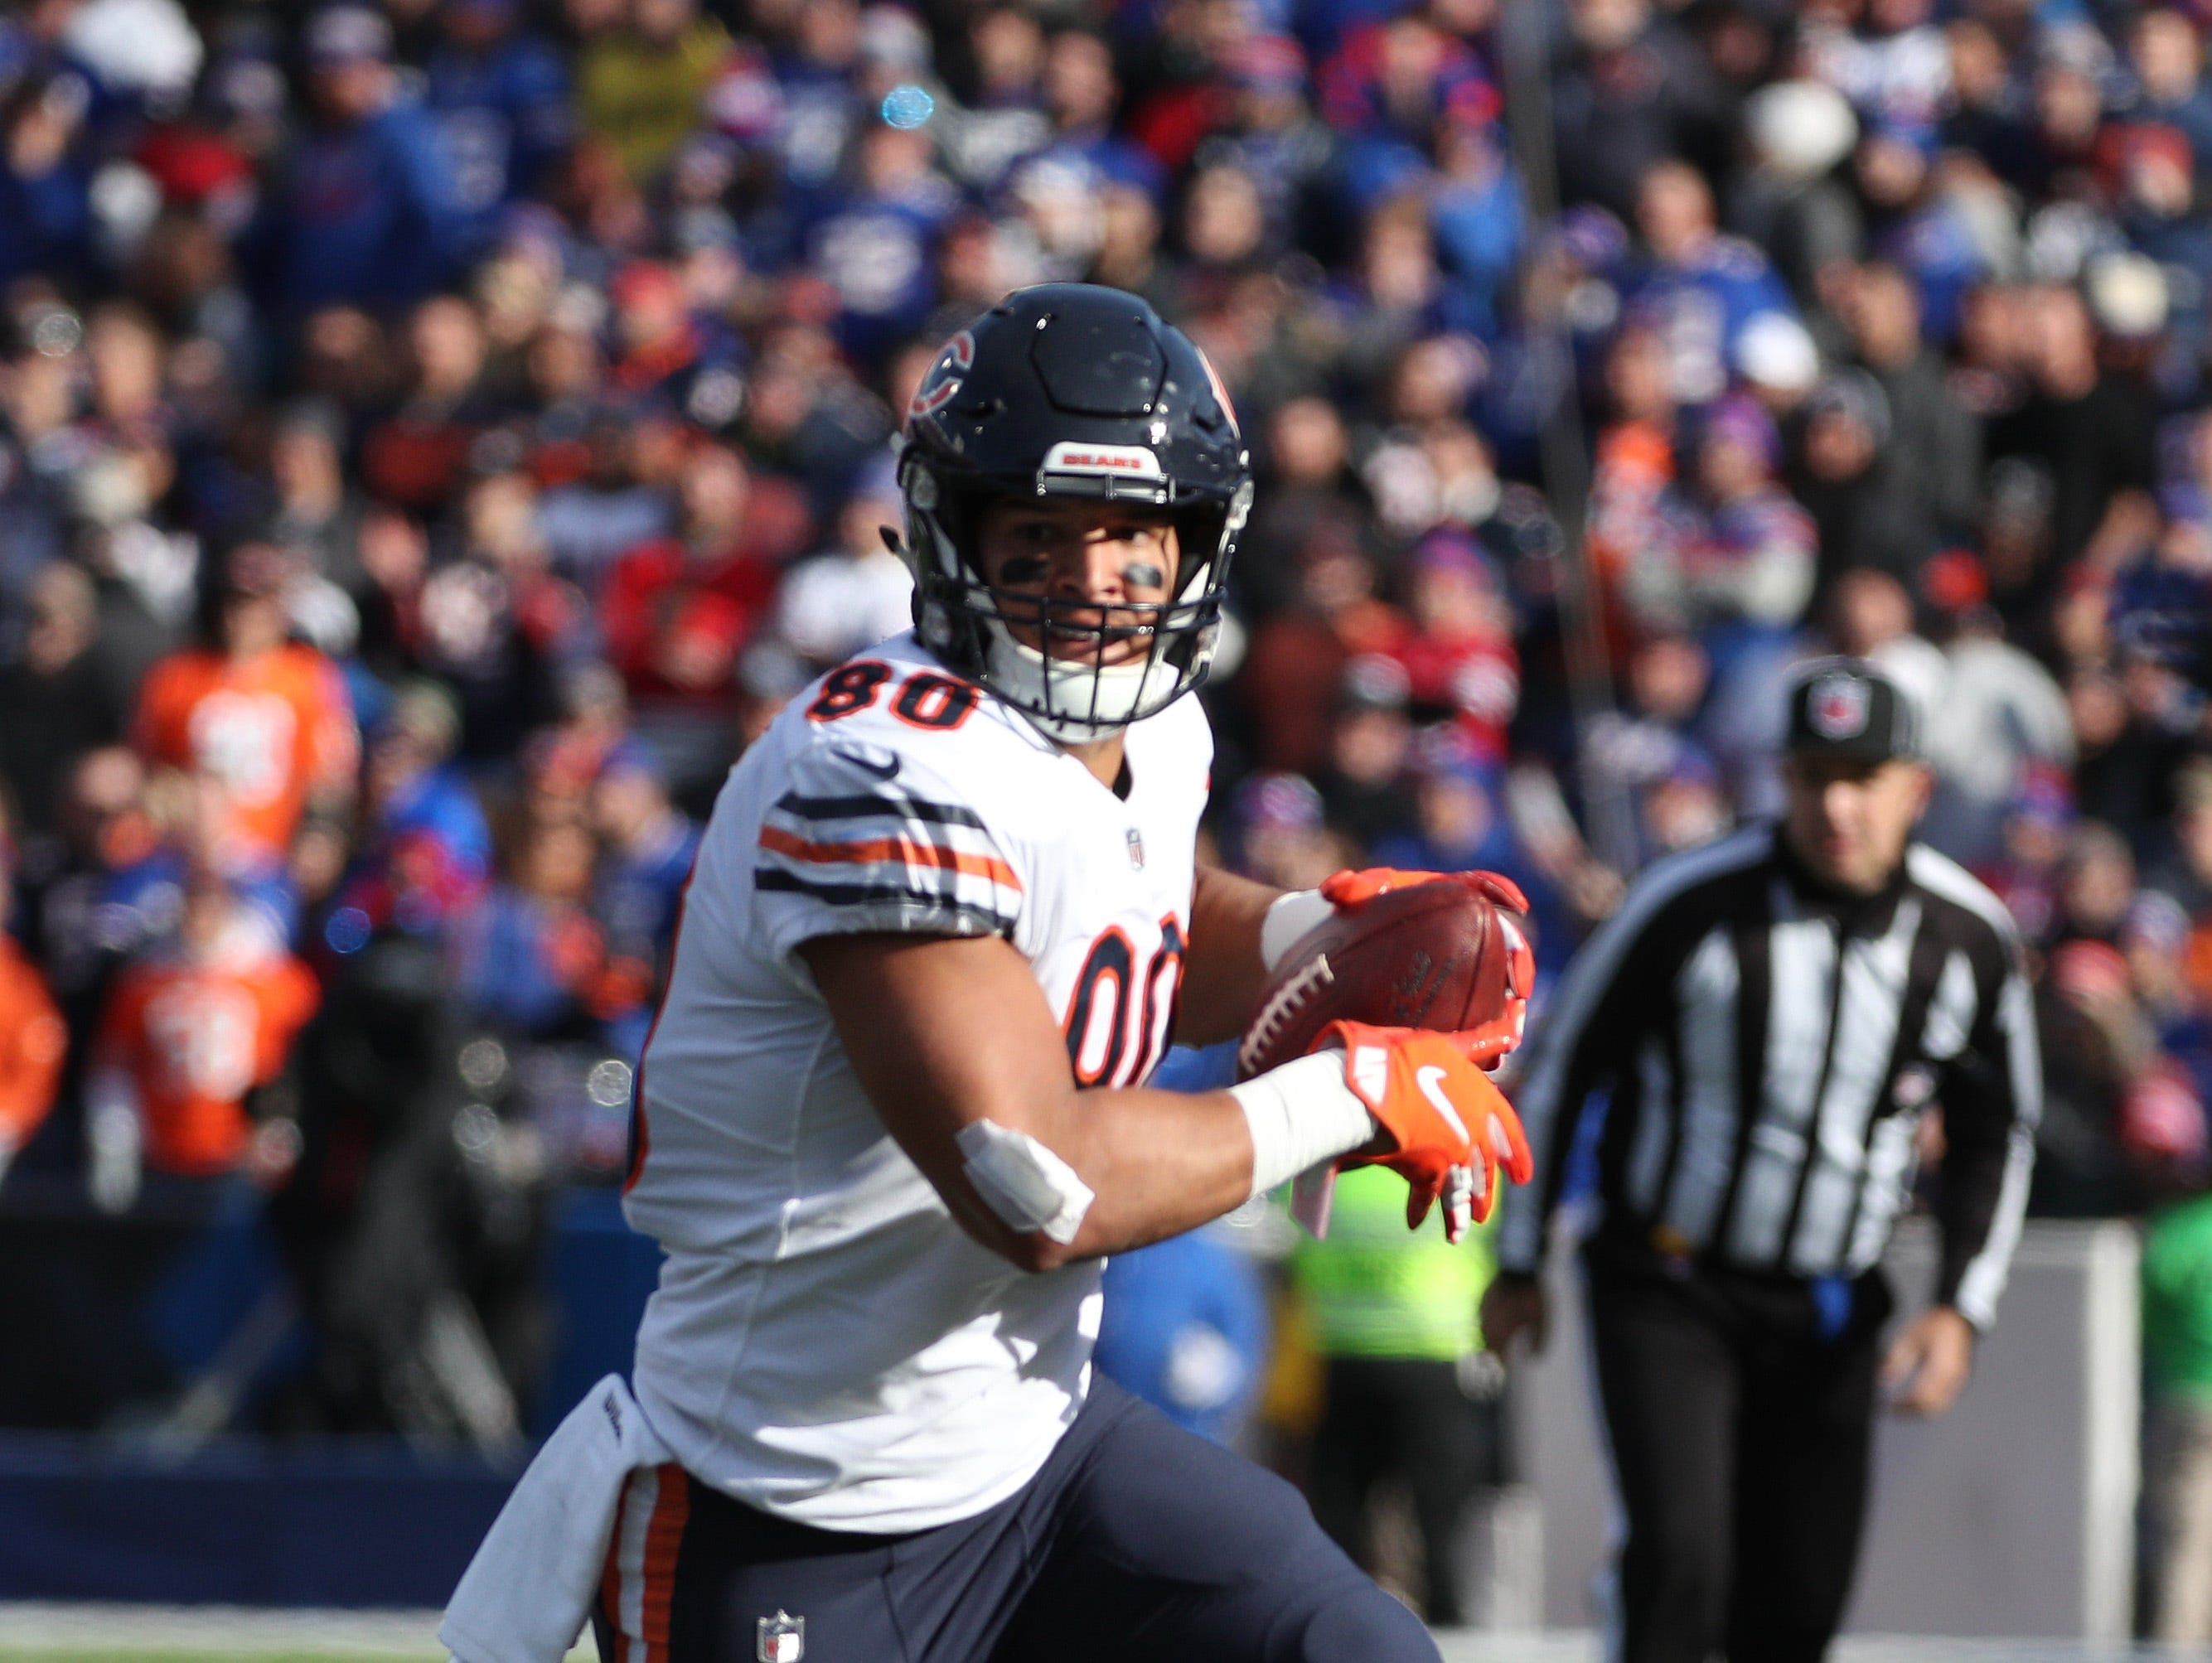 Bears tight end Trey Burton looks for running room after a catch.